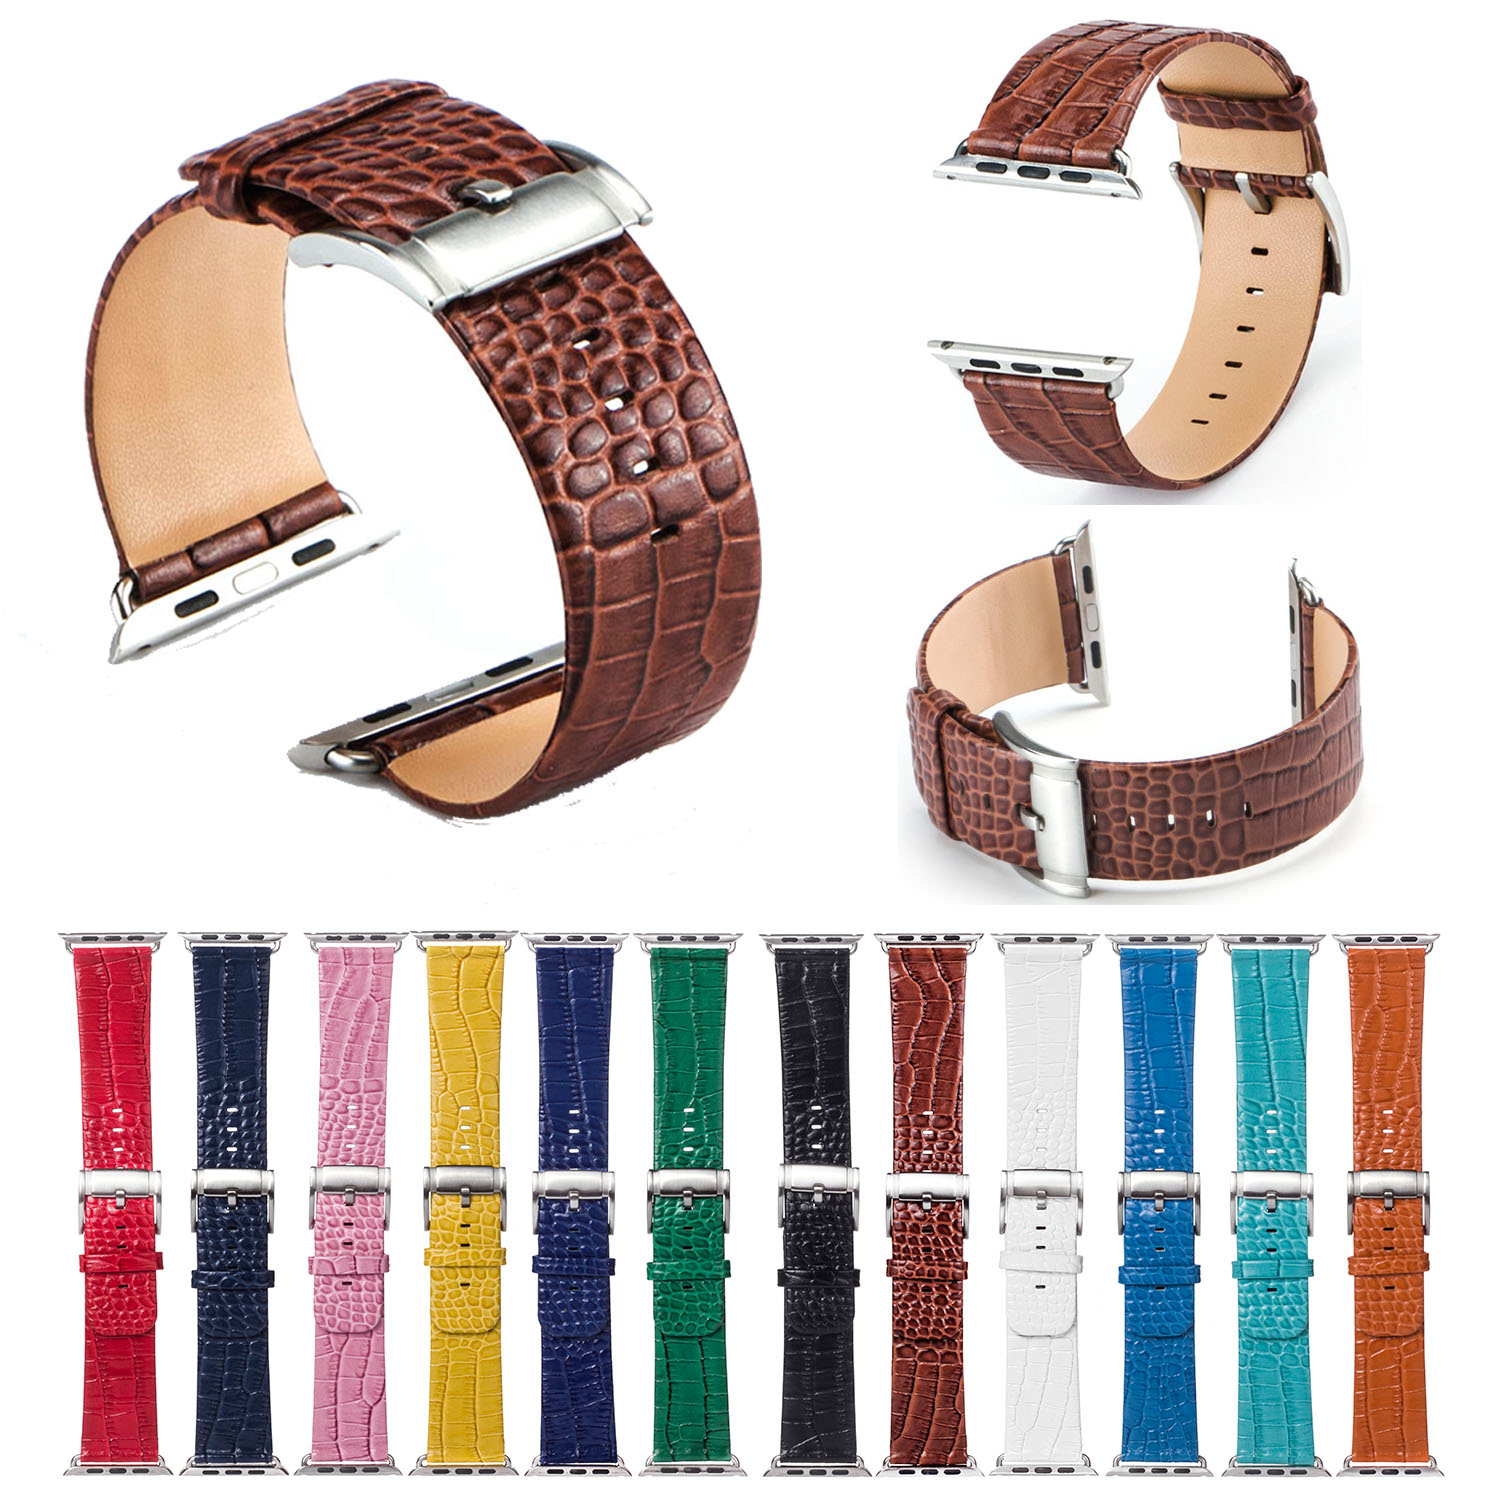 DAHASE Crocodile Pattern Genuine Leather Strap for Apple Watch Band 38mm 42mm Bracelet for iWatch Series 1/2/3 Watchbands istrap black brown red france genuine calf leather single tour bracelet watch strap for iwatch apple watch band 38mm 42mm